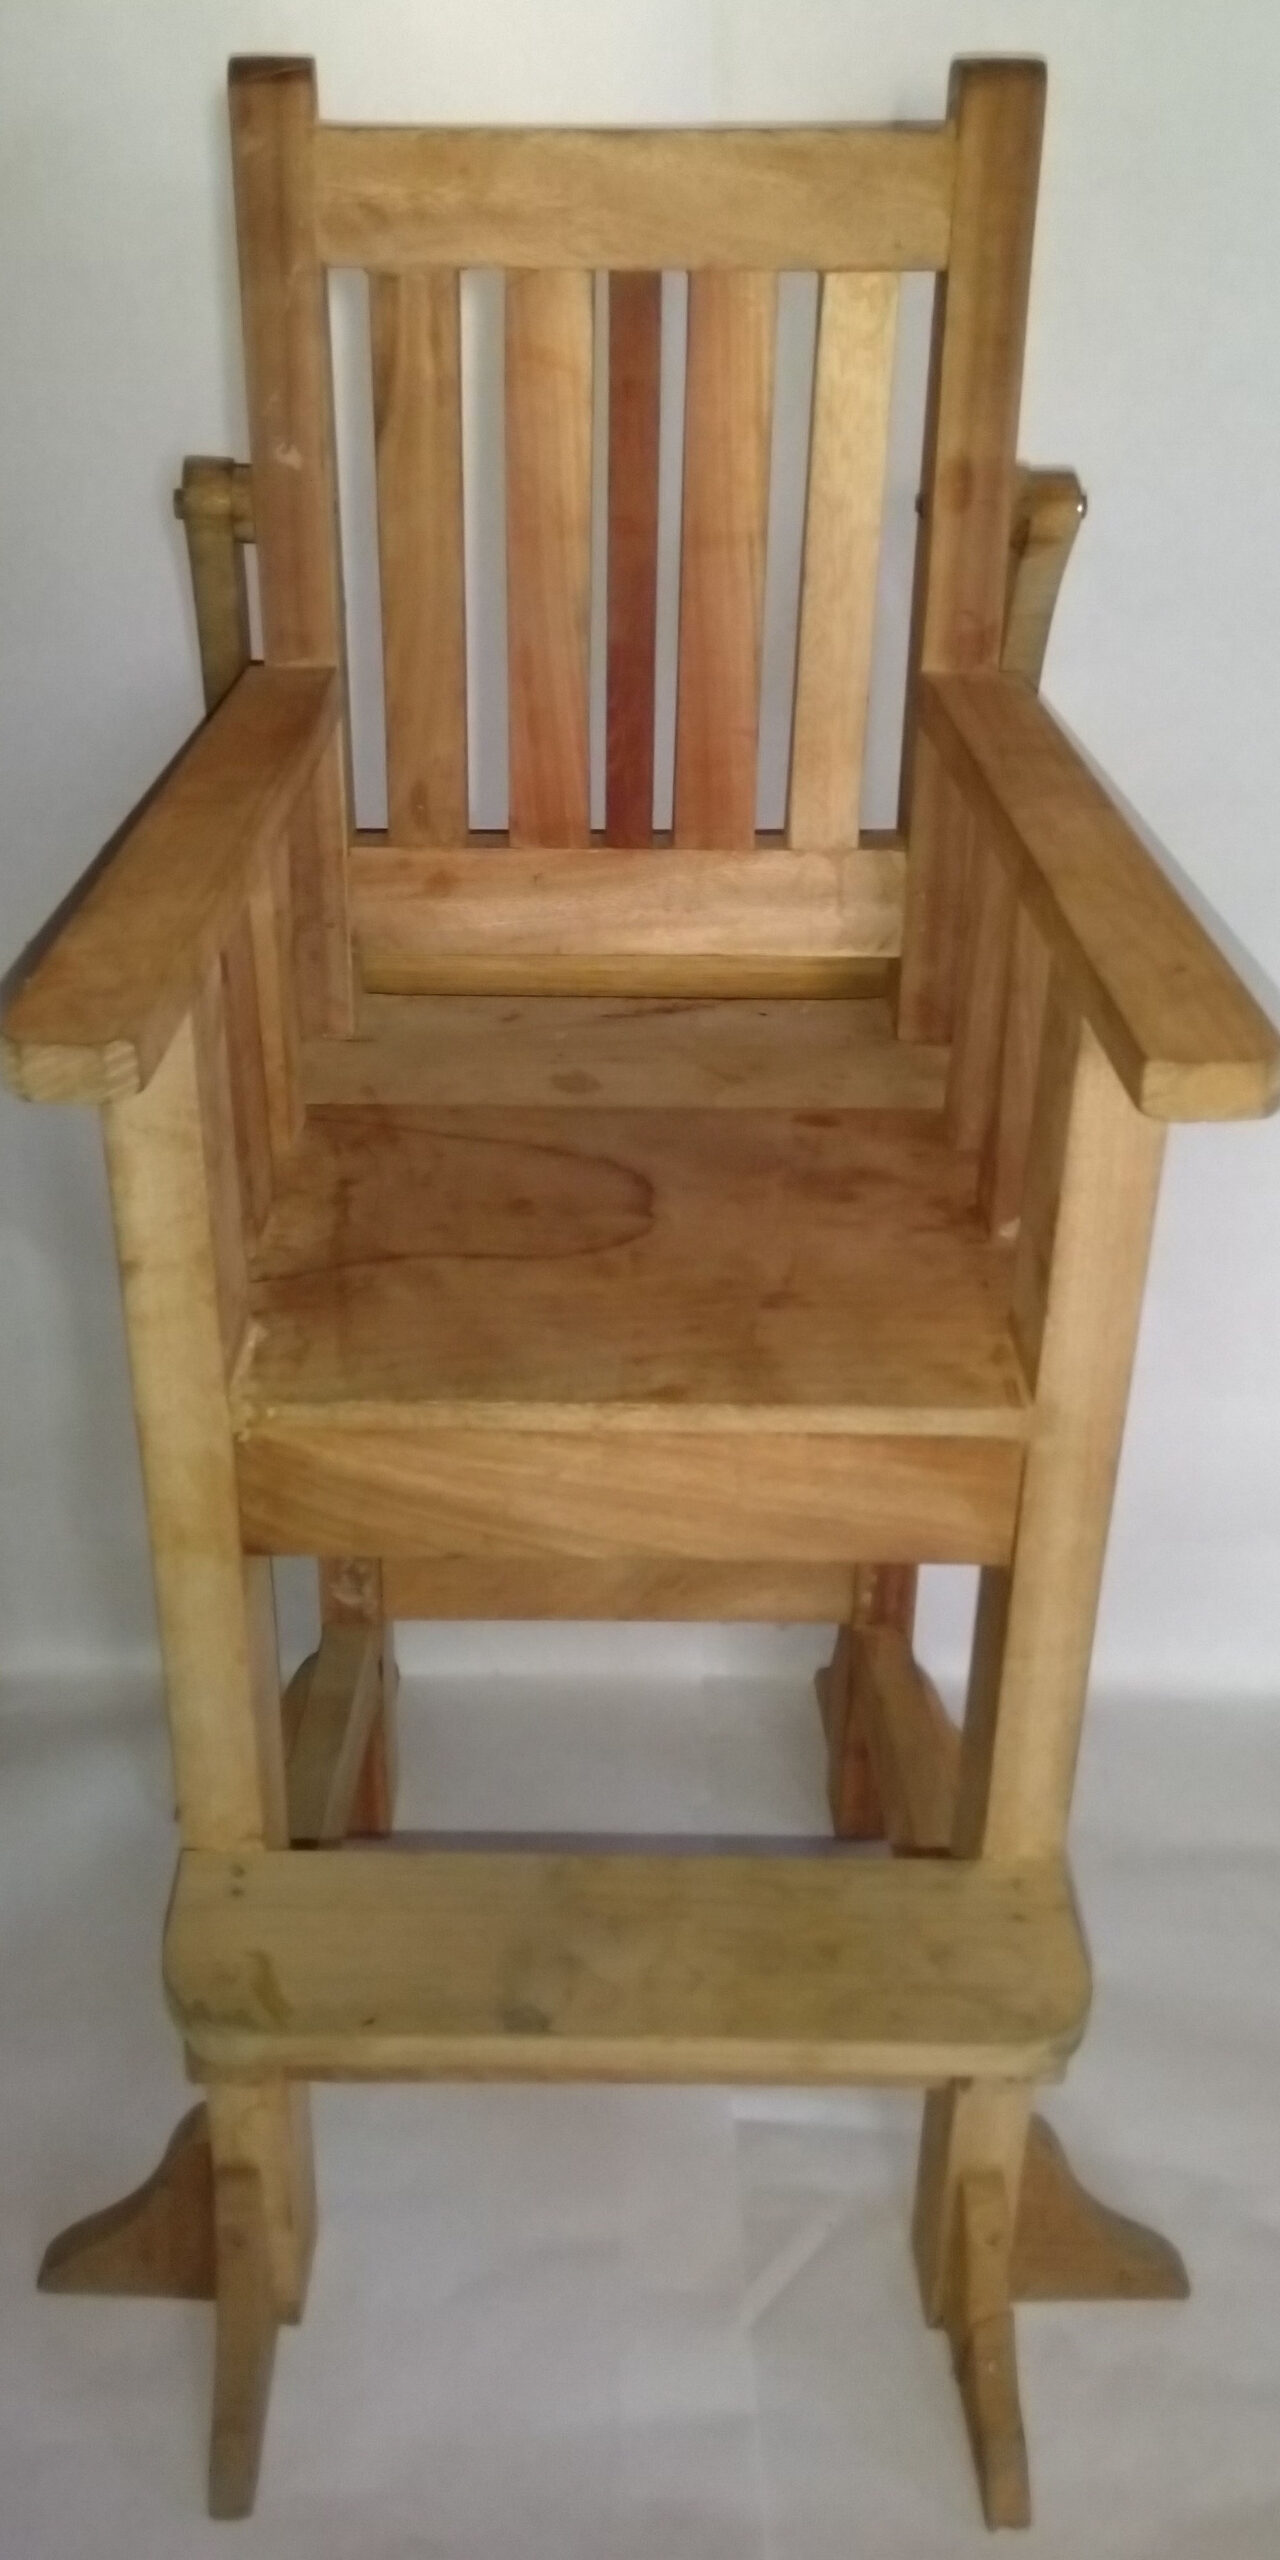 high chair -front